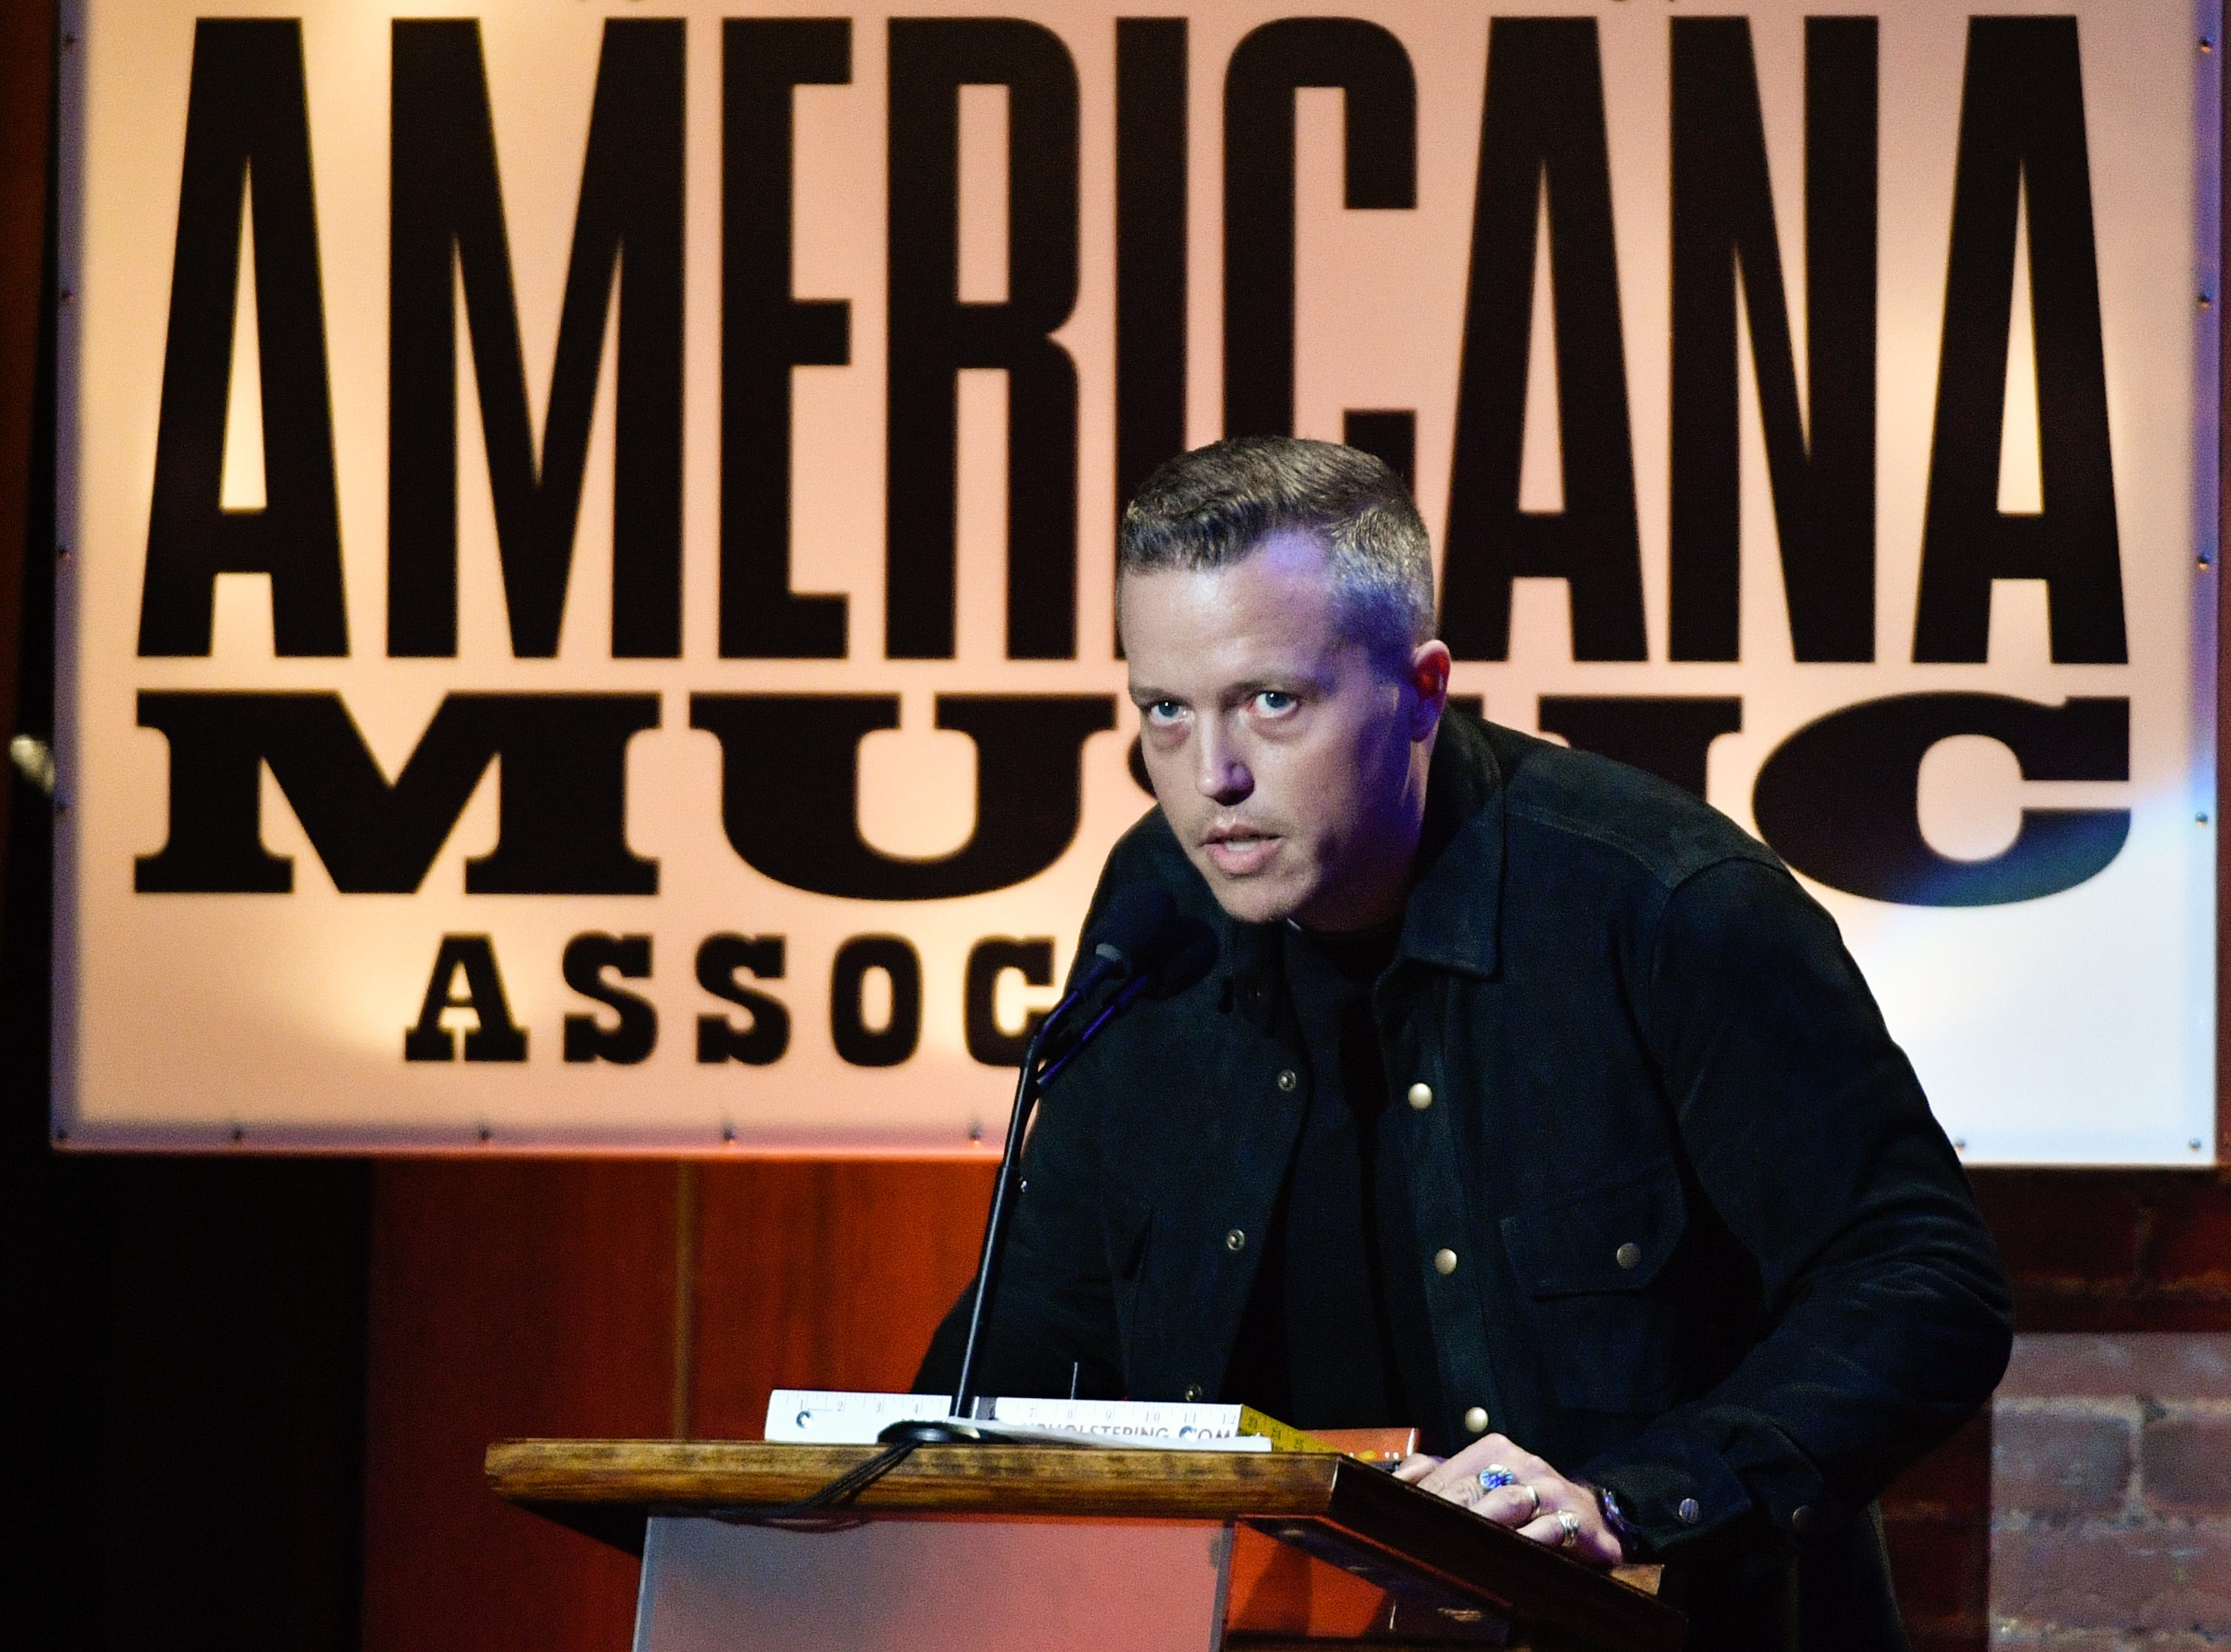 Jason Isbell accepts the Song of the Year award during the 2018 Americana Honors and Awards show at the Ryman Auditorium in Nashville, Tenn., Wednesday, Sept. 12, 2018.